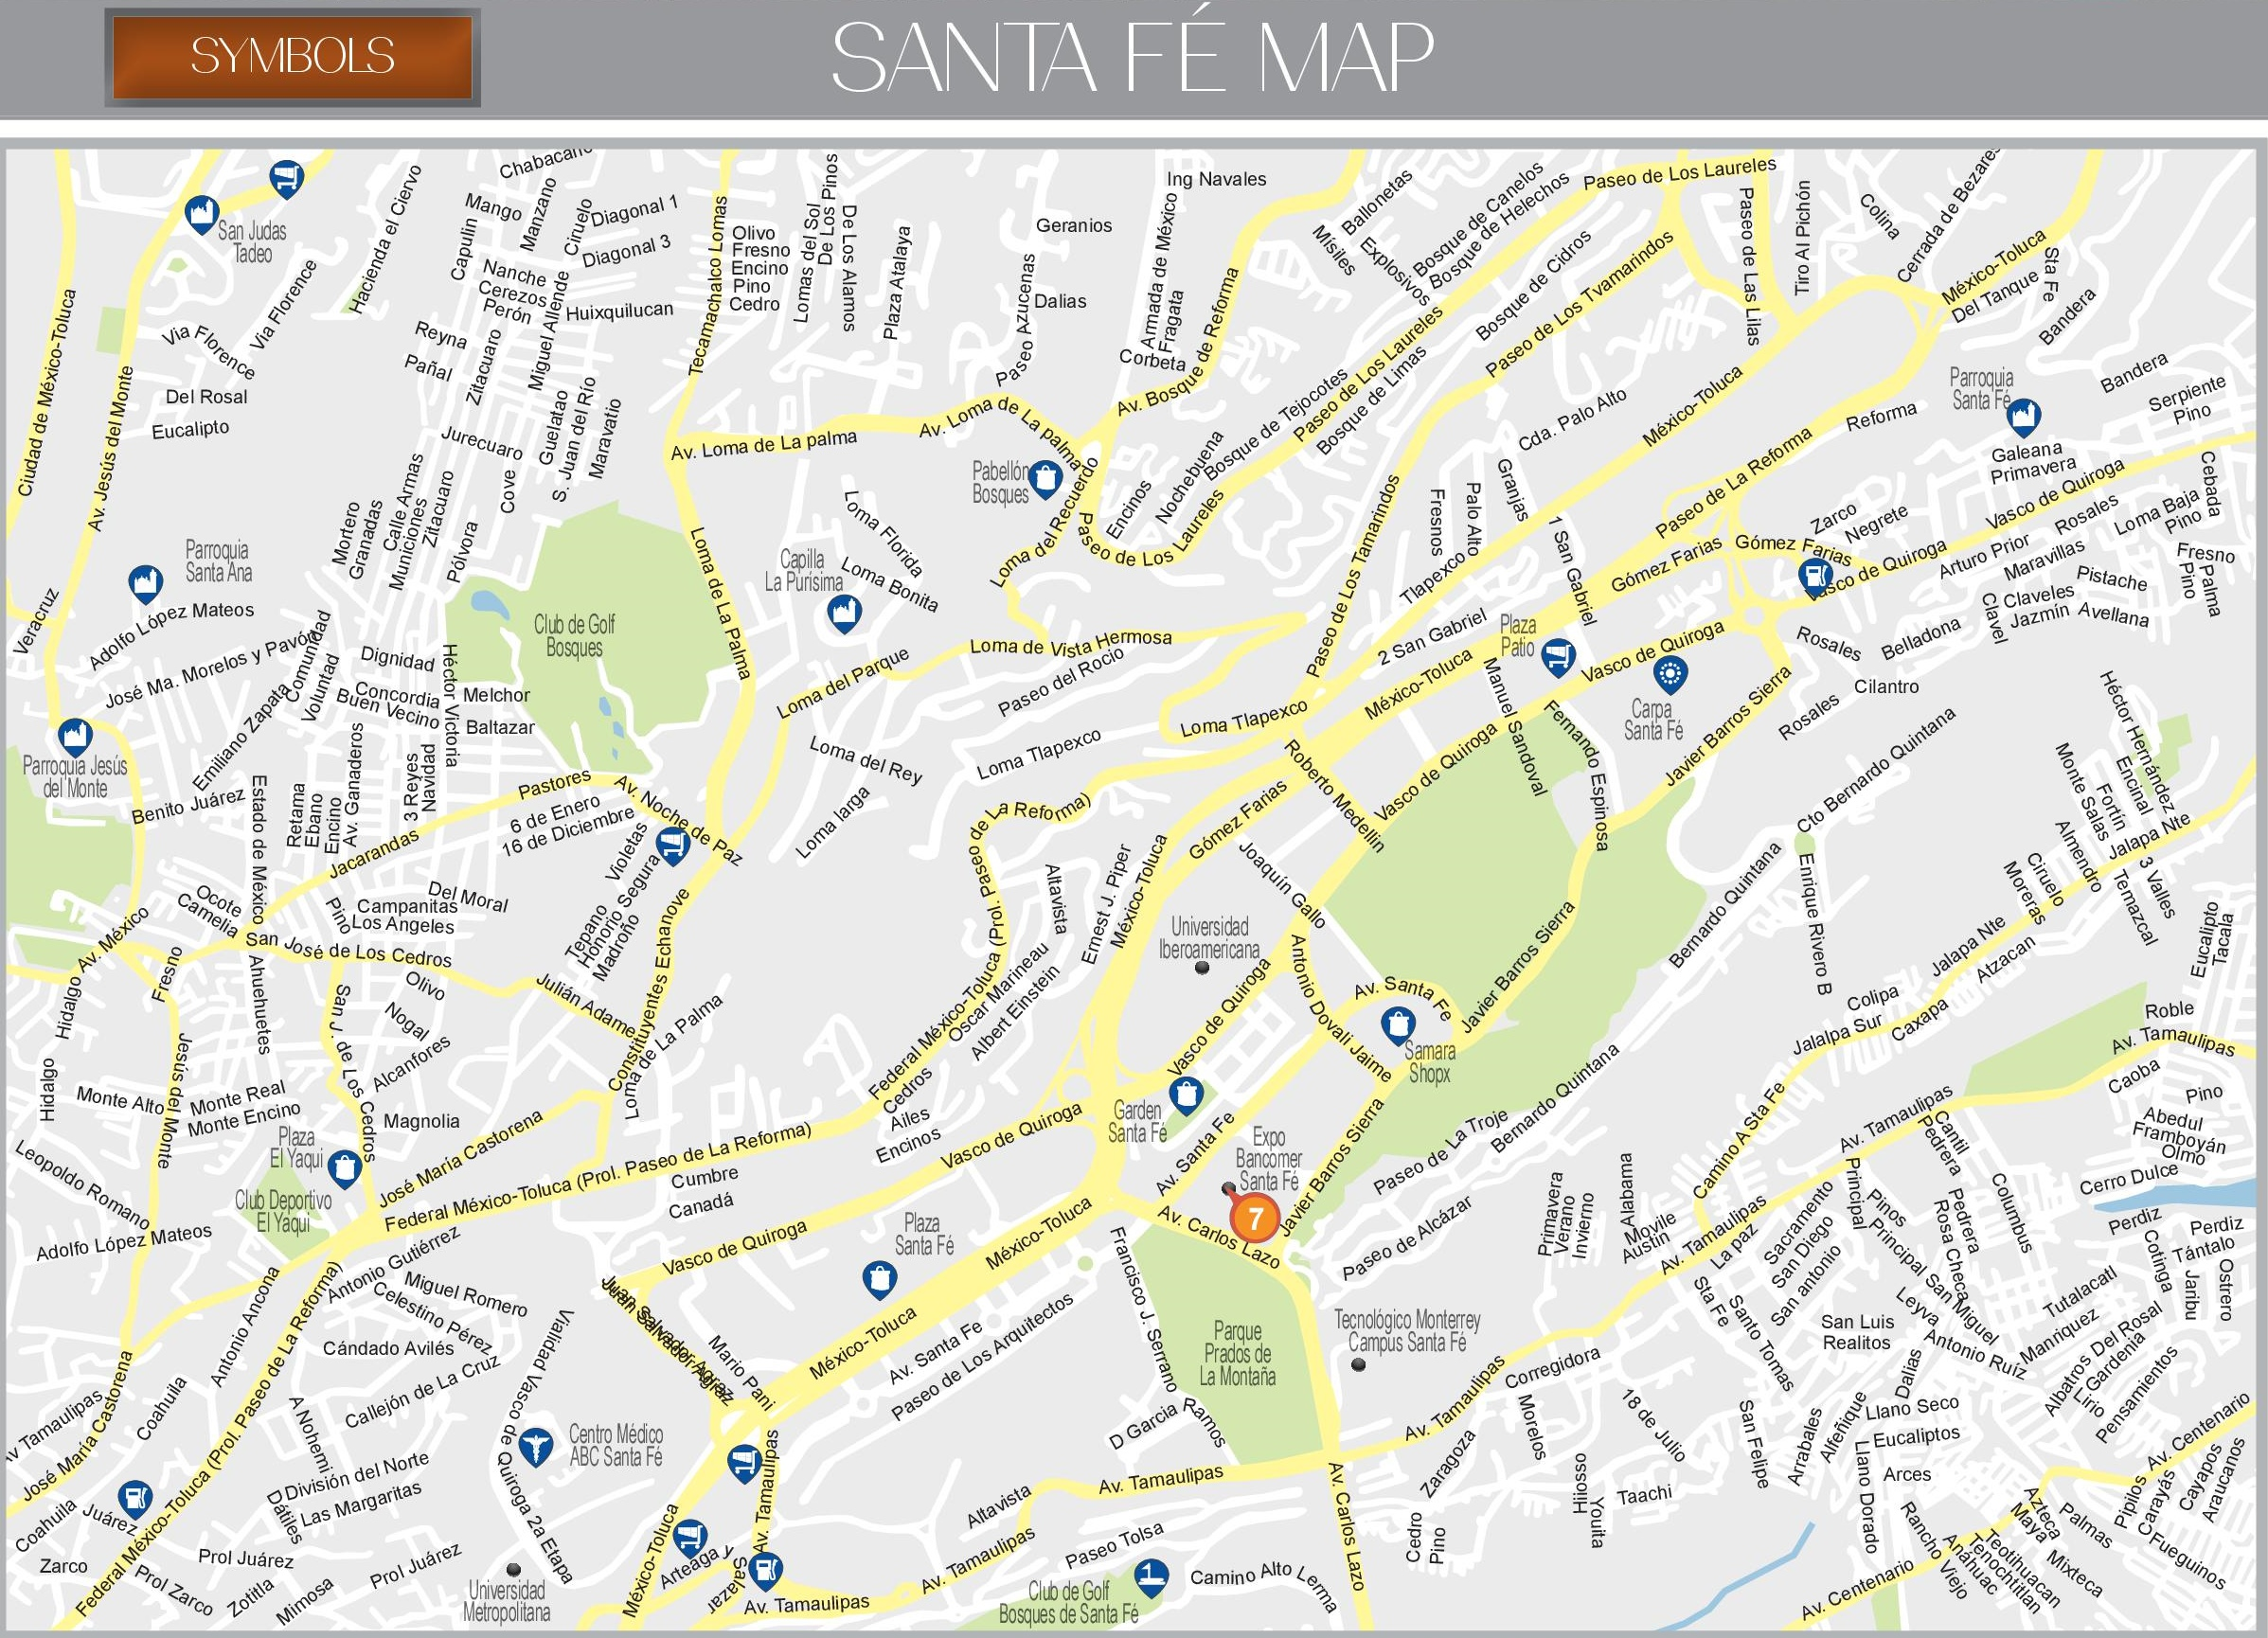 Santa Fe map (Mexico City)